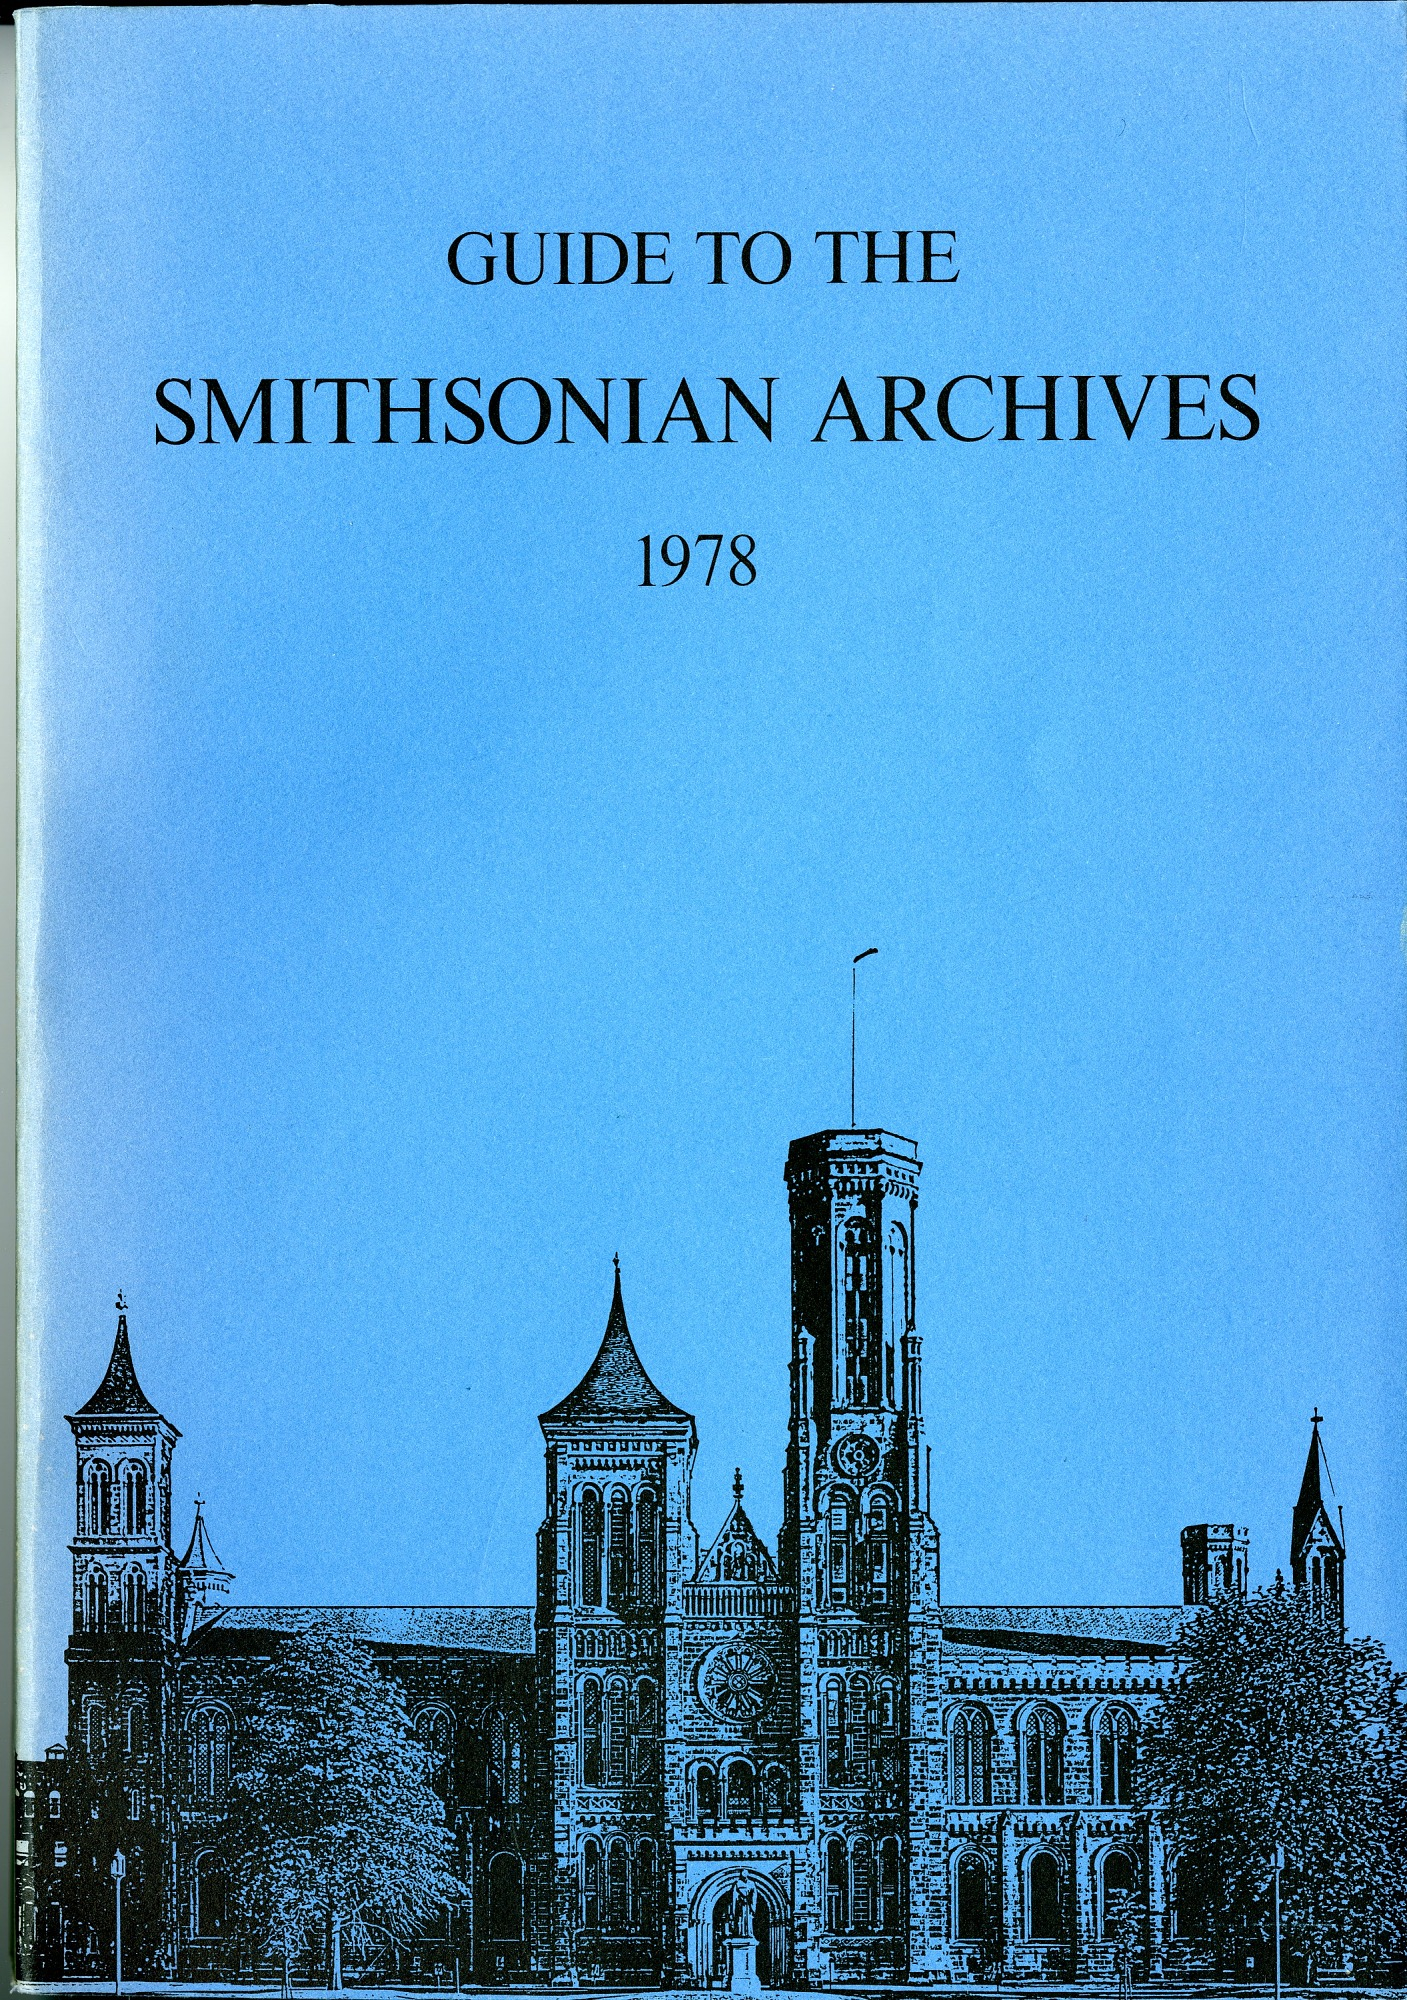 Aug 9 Guide to the Smithsonian Archives 1978